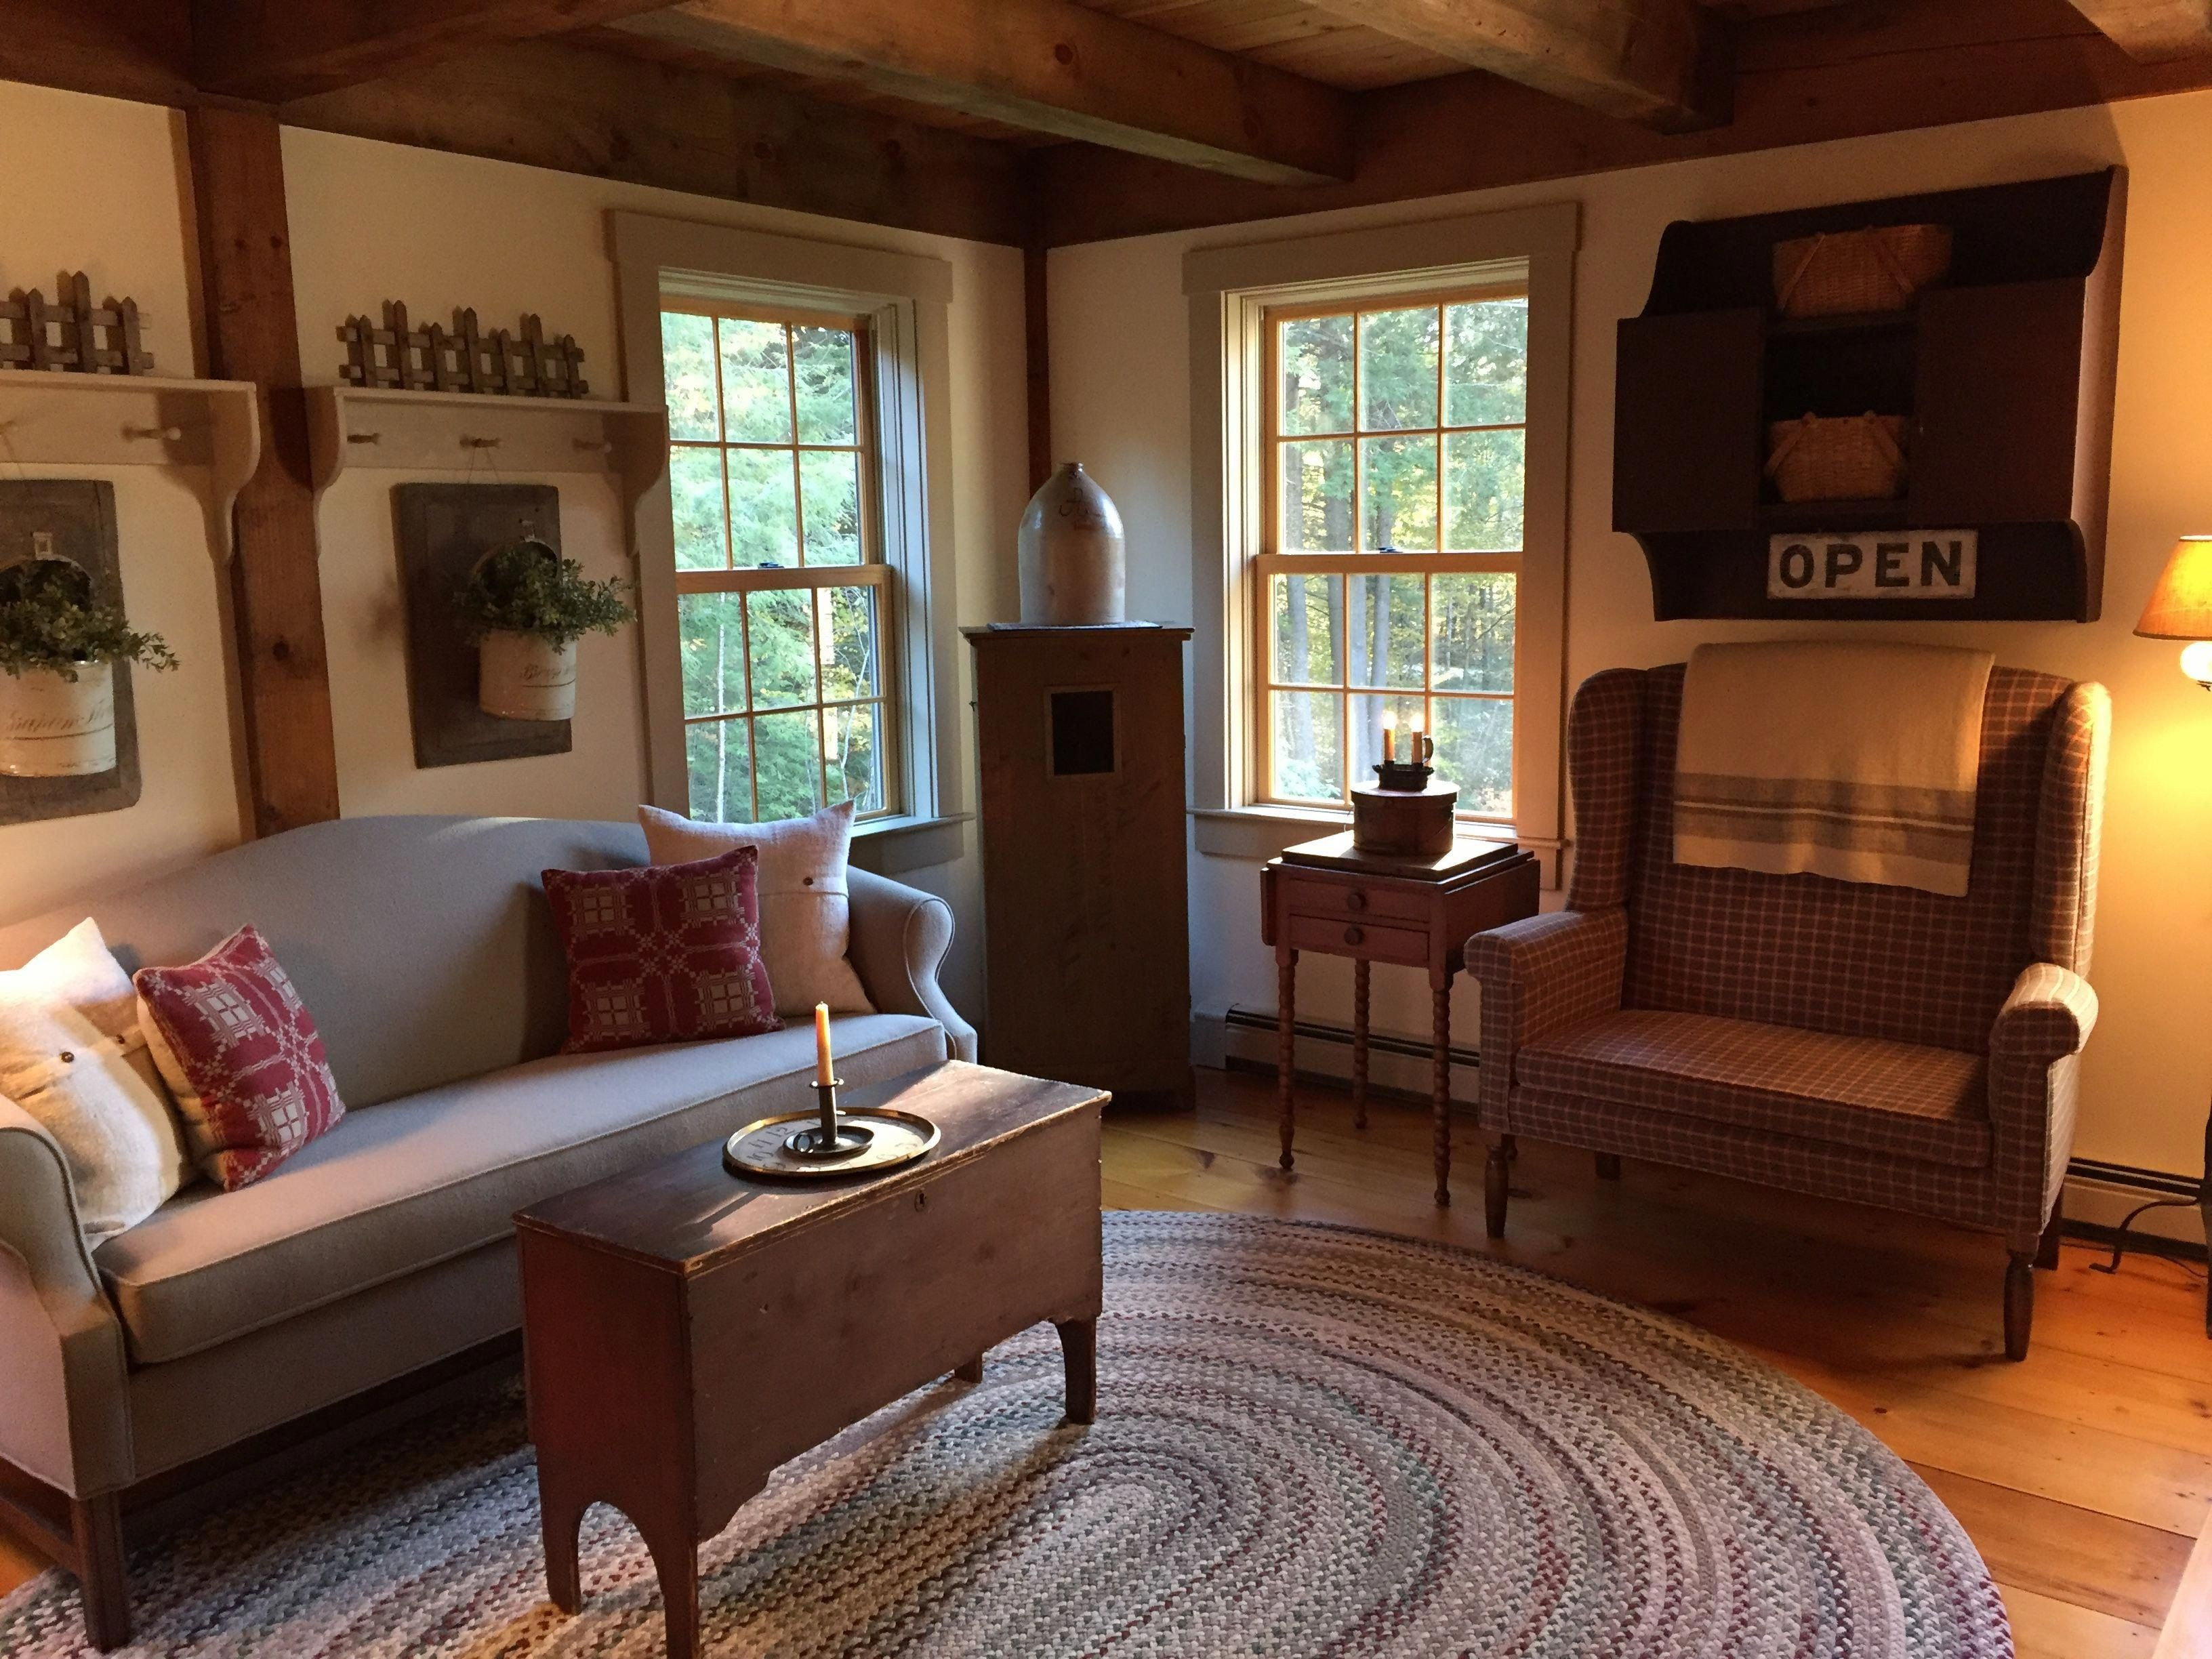 30 Early American Living Room Furniture In 2020 Primitive Living